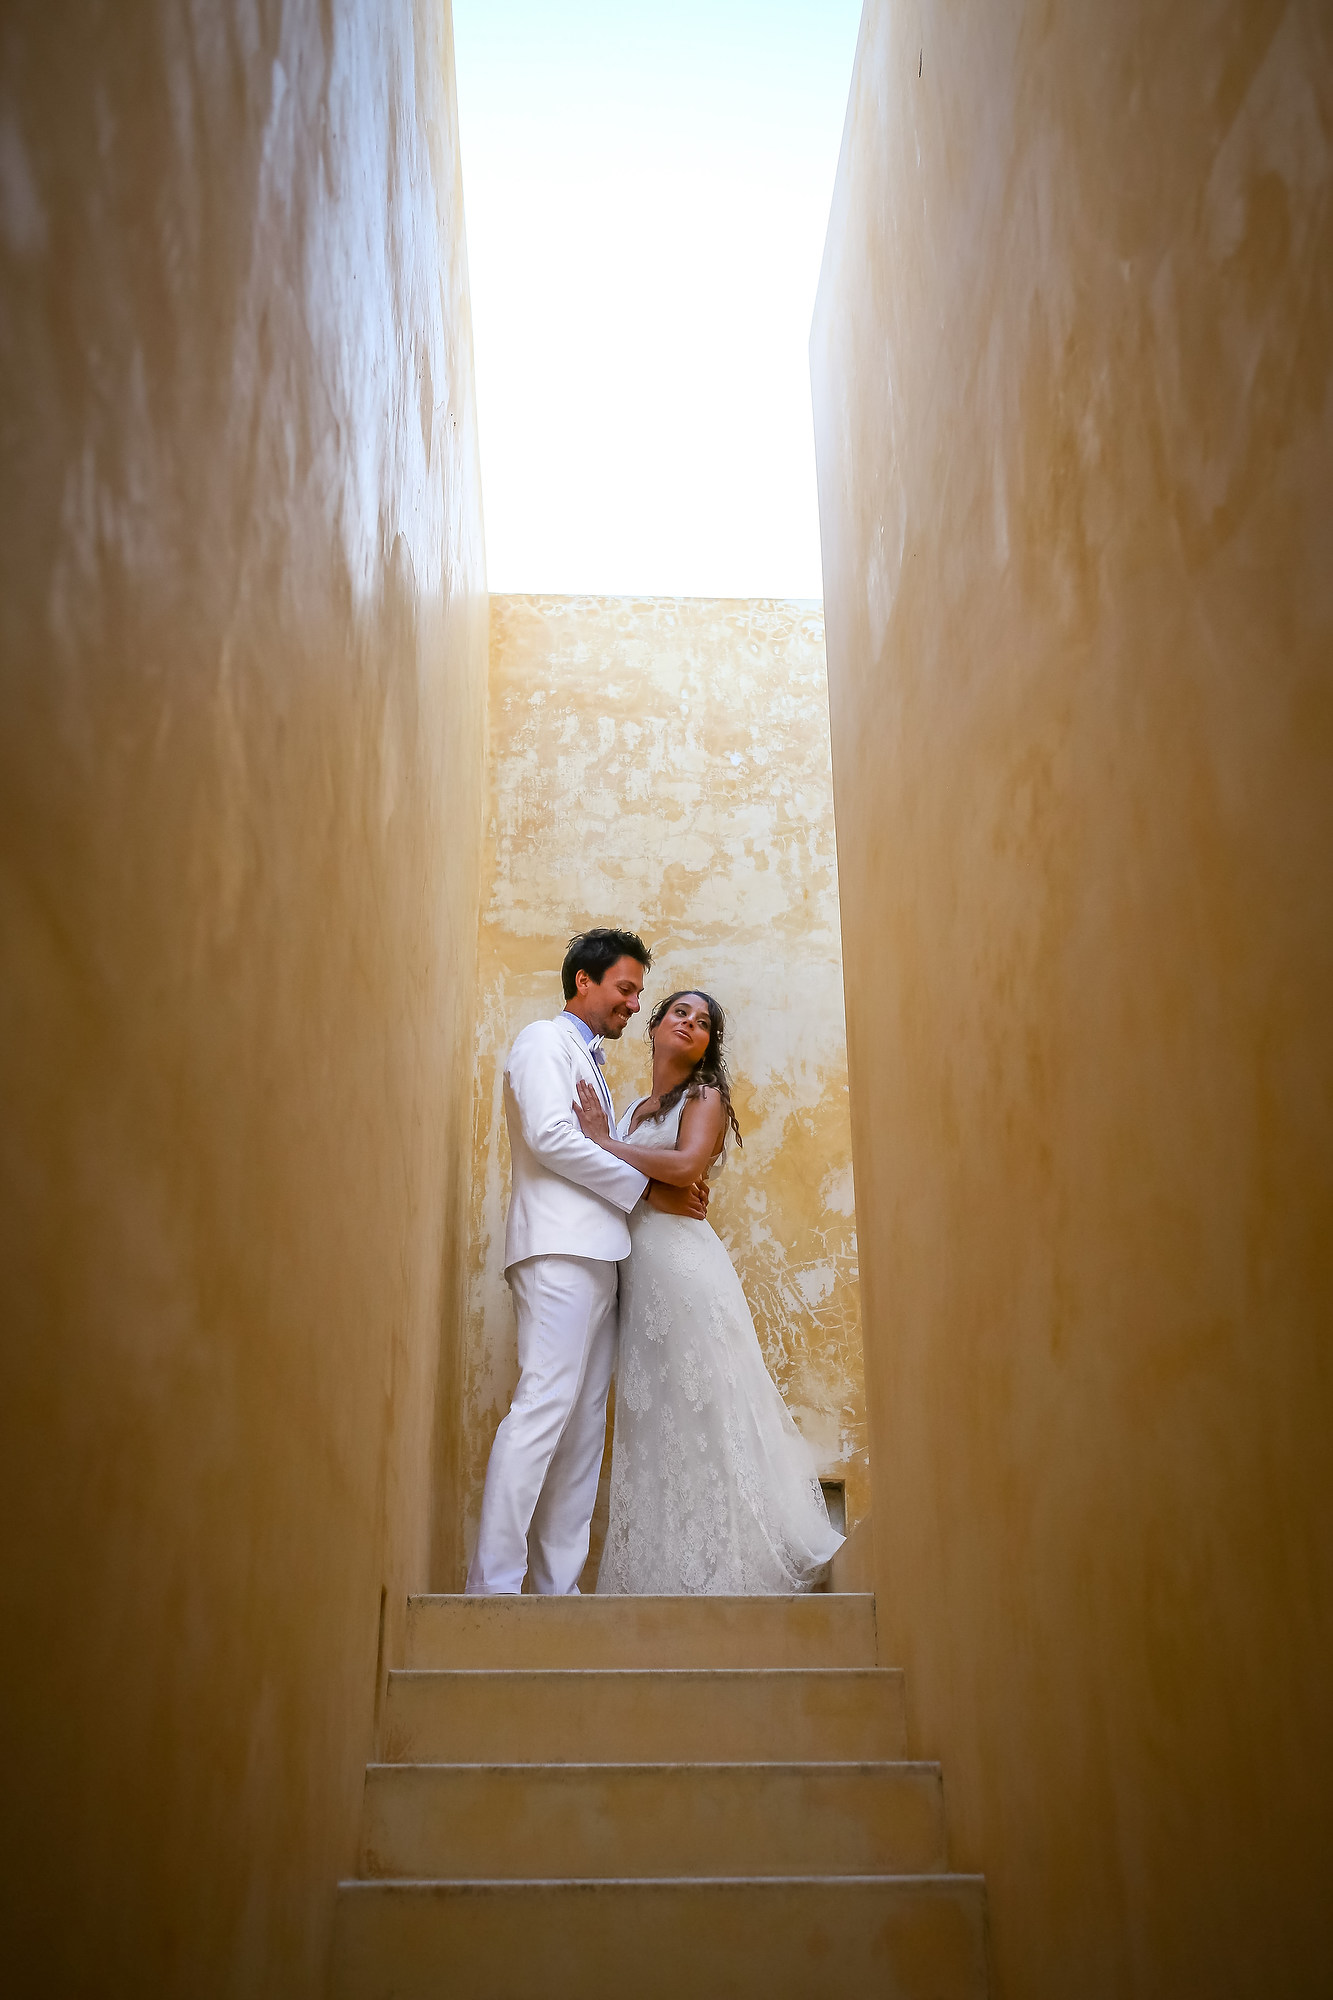 FineArt studio Destination Wedding Photographer Cancun Riviera Maya Playa del Carmen Mexico www.fineartstudioweddings.com